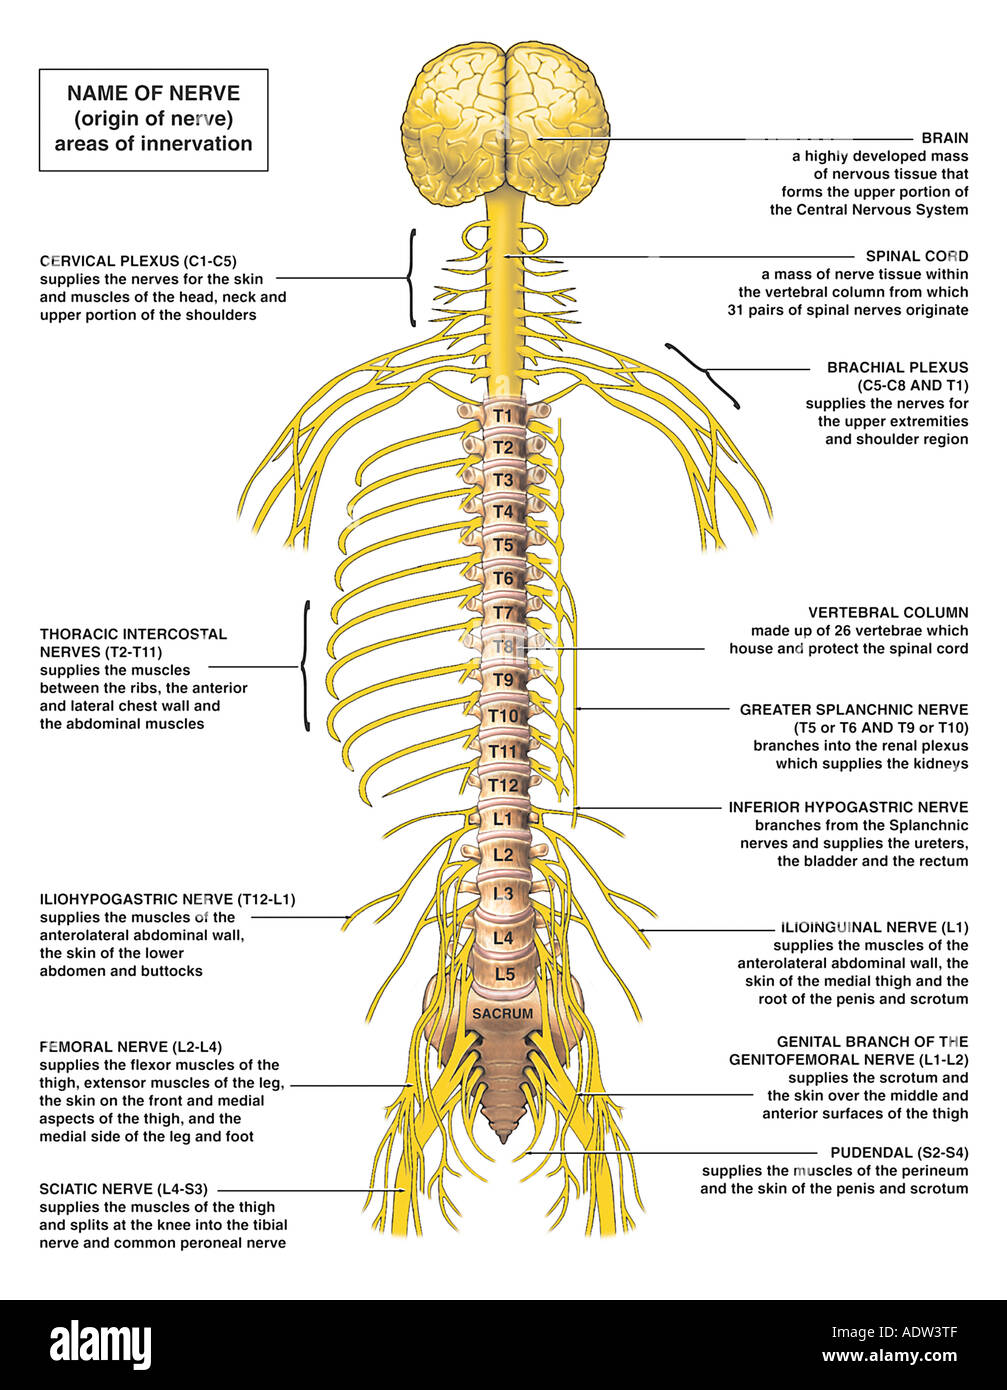 Anatomy of the Nervous System Stock Photo: 7711694 - Alamy